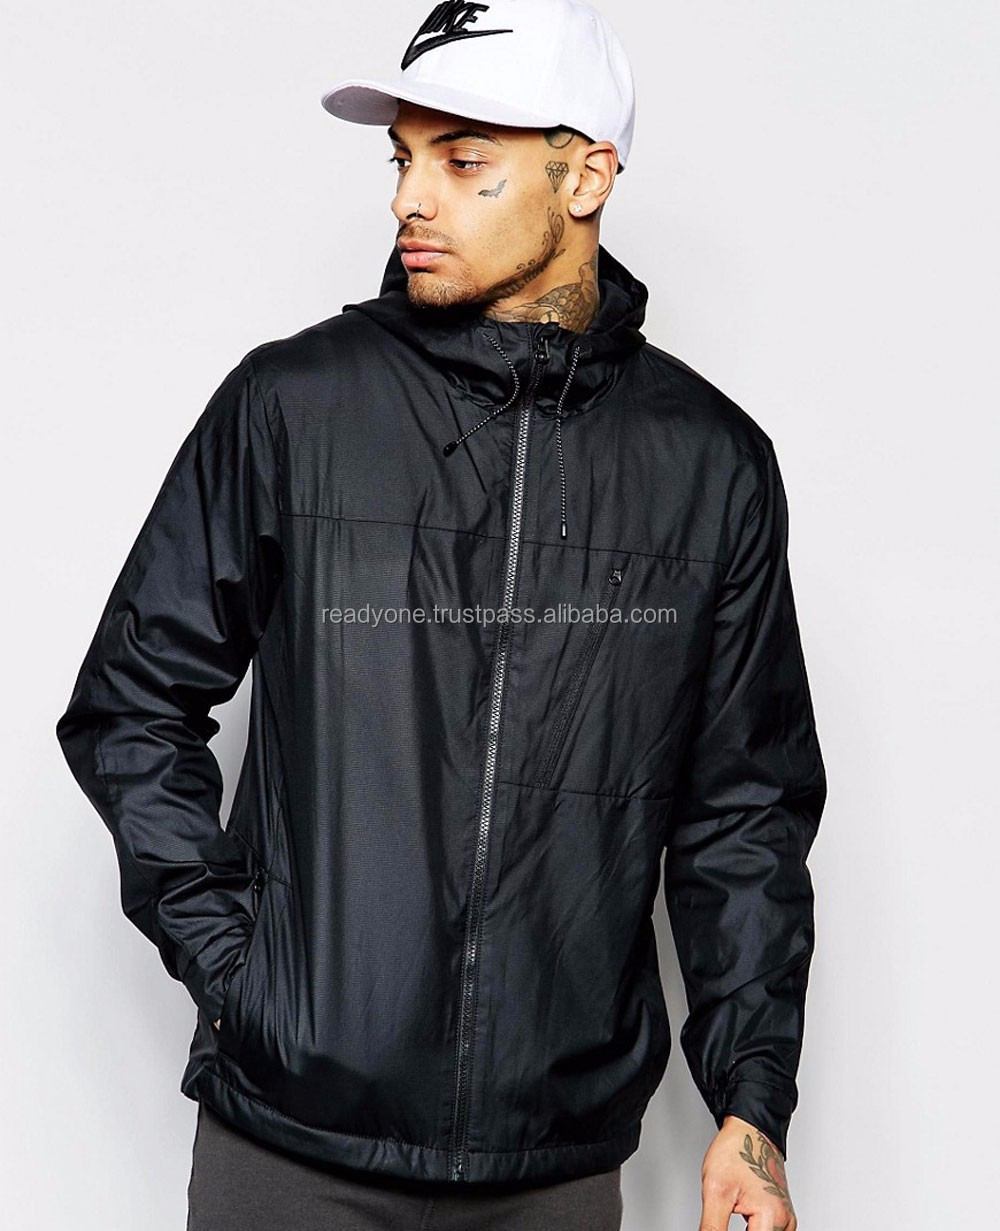 hooded skiwear mens nylon windbreaker jackets